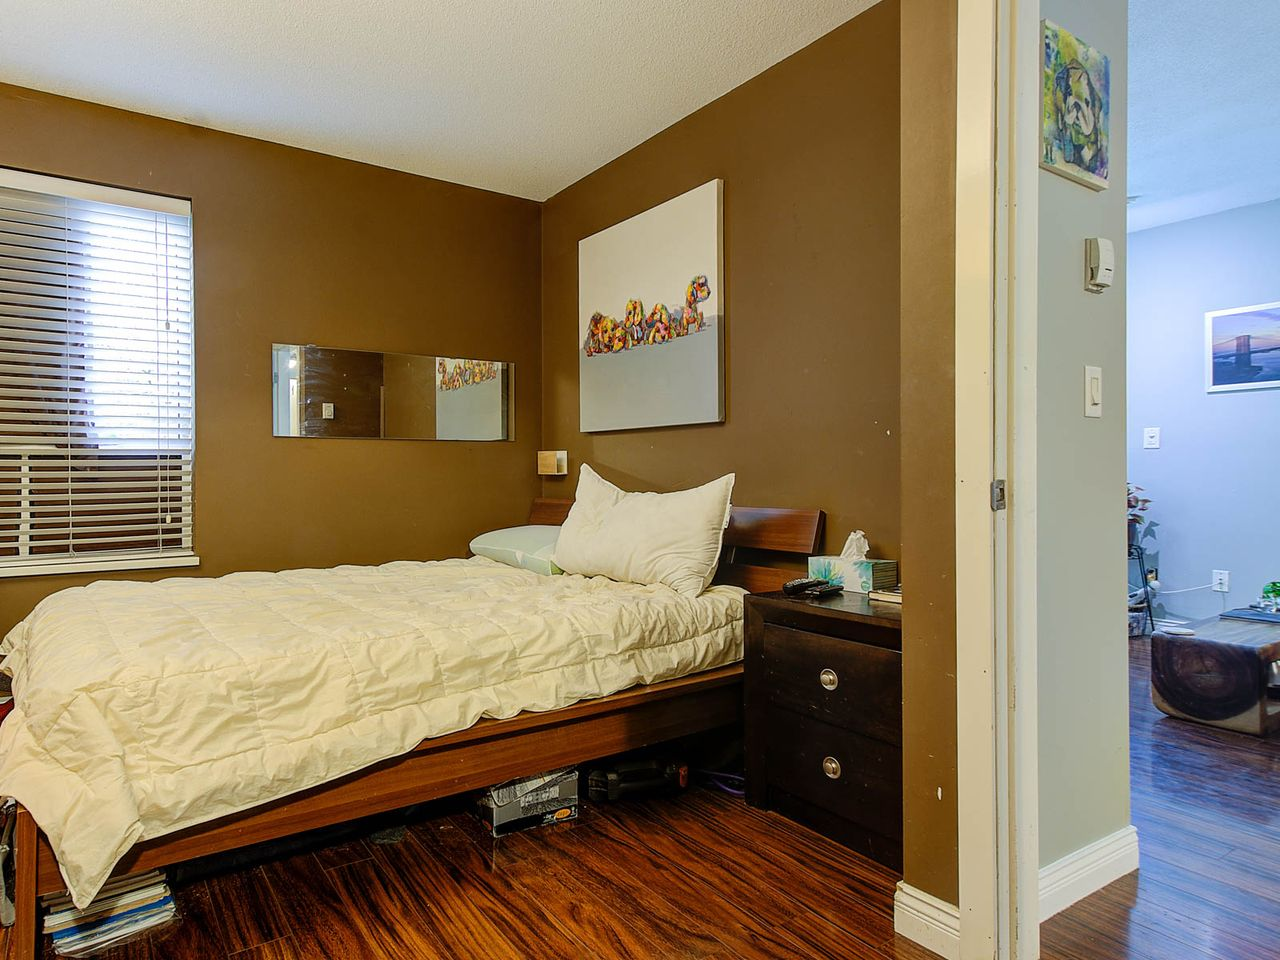 218-7383-griffiths-burnaby-16 at 218 - 7383 Griffiths Drive, Highgate, Burnaby South